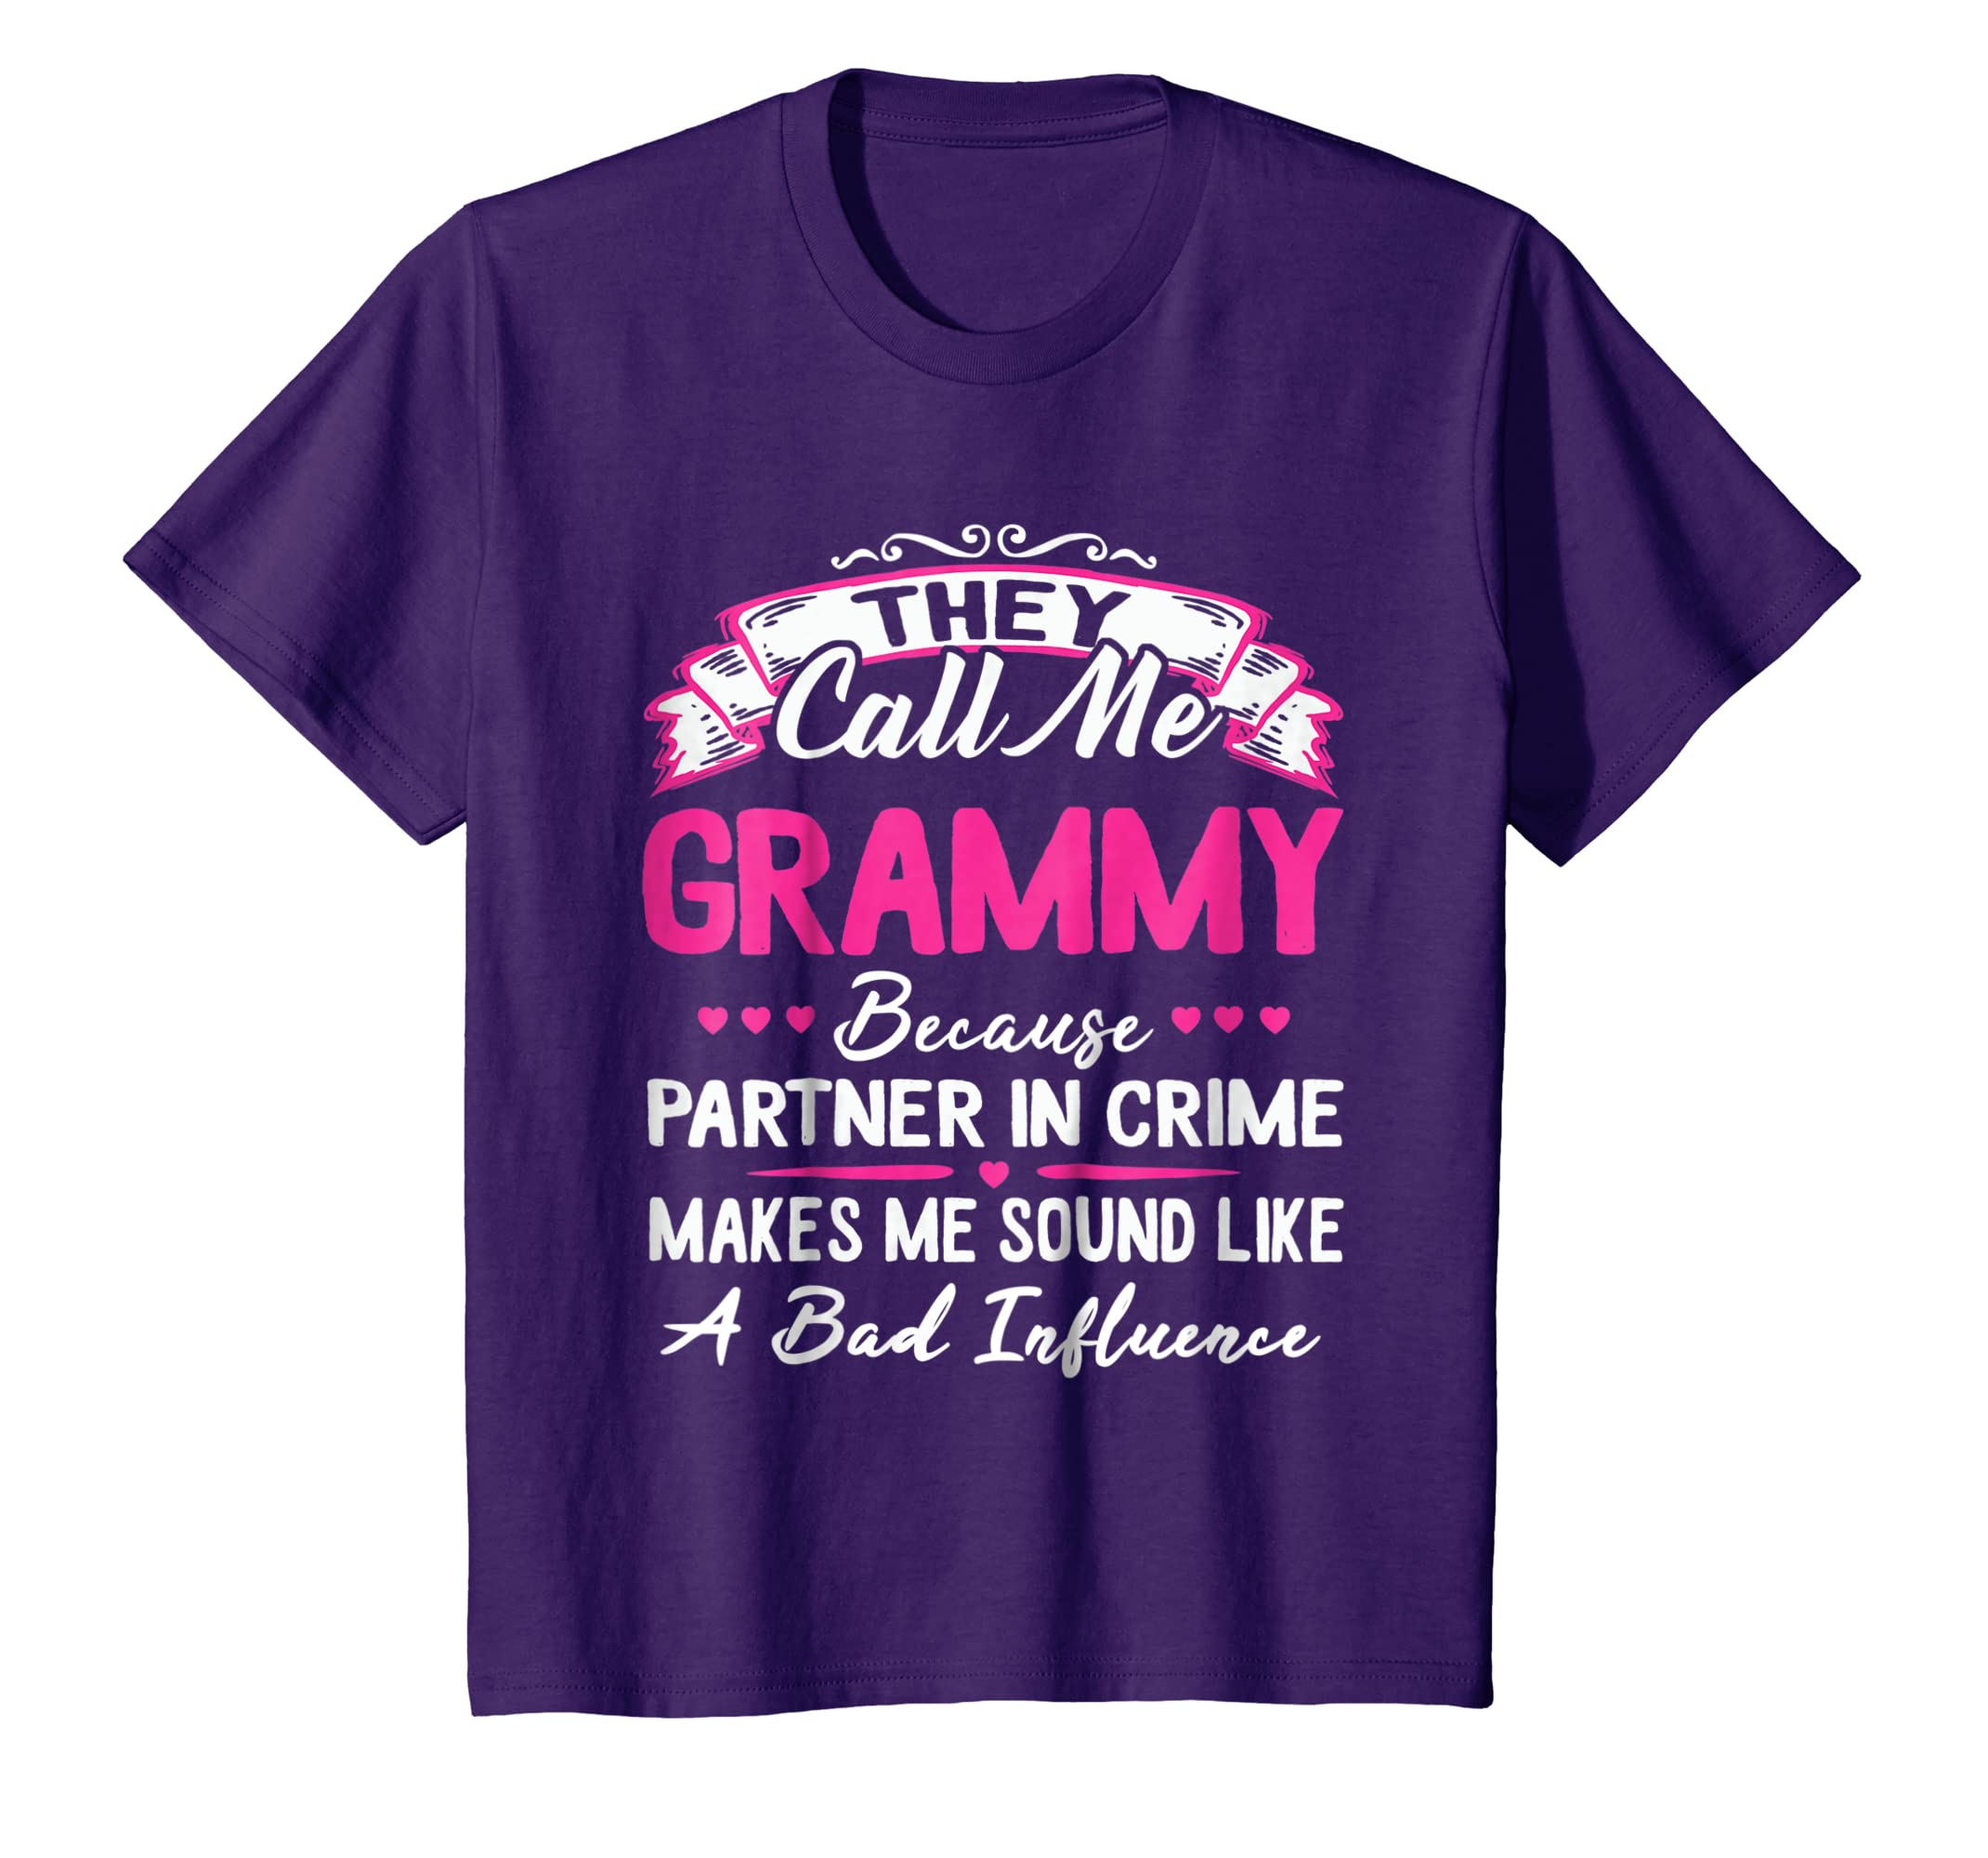 9001db34 Amazon.com: They Call Me GRAMMY Because Partner In Crime T-shirt: Clothing